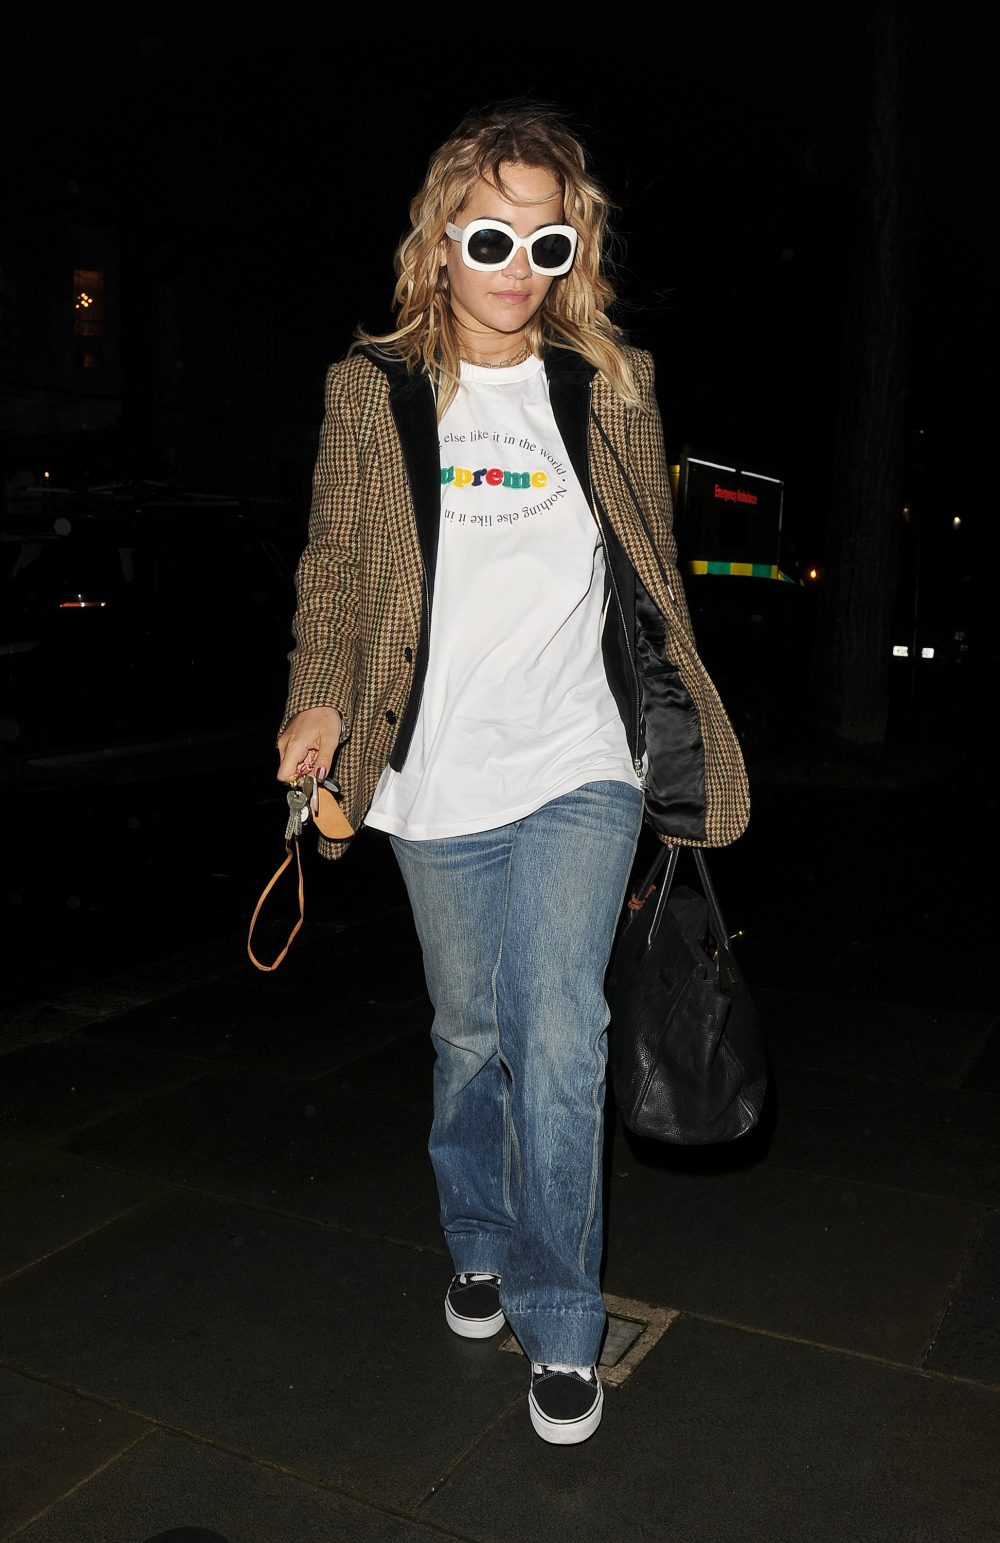 Rita Ora is seen back in London for the first time in 3 months, having enjoyed an extended vacation in Los Angeles. Rita wore jeans, a Supreme T-shirt and a tweed jacket for the low key outing in Notting Hill